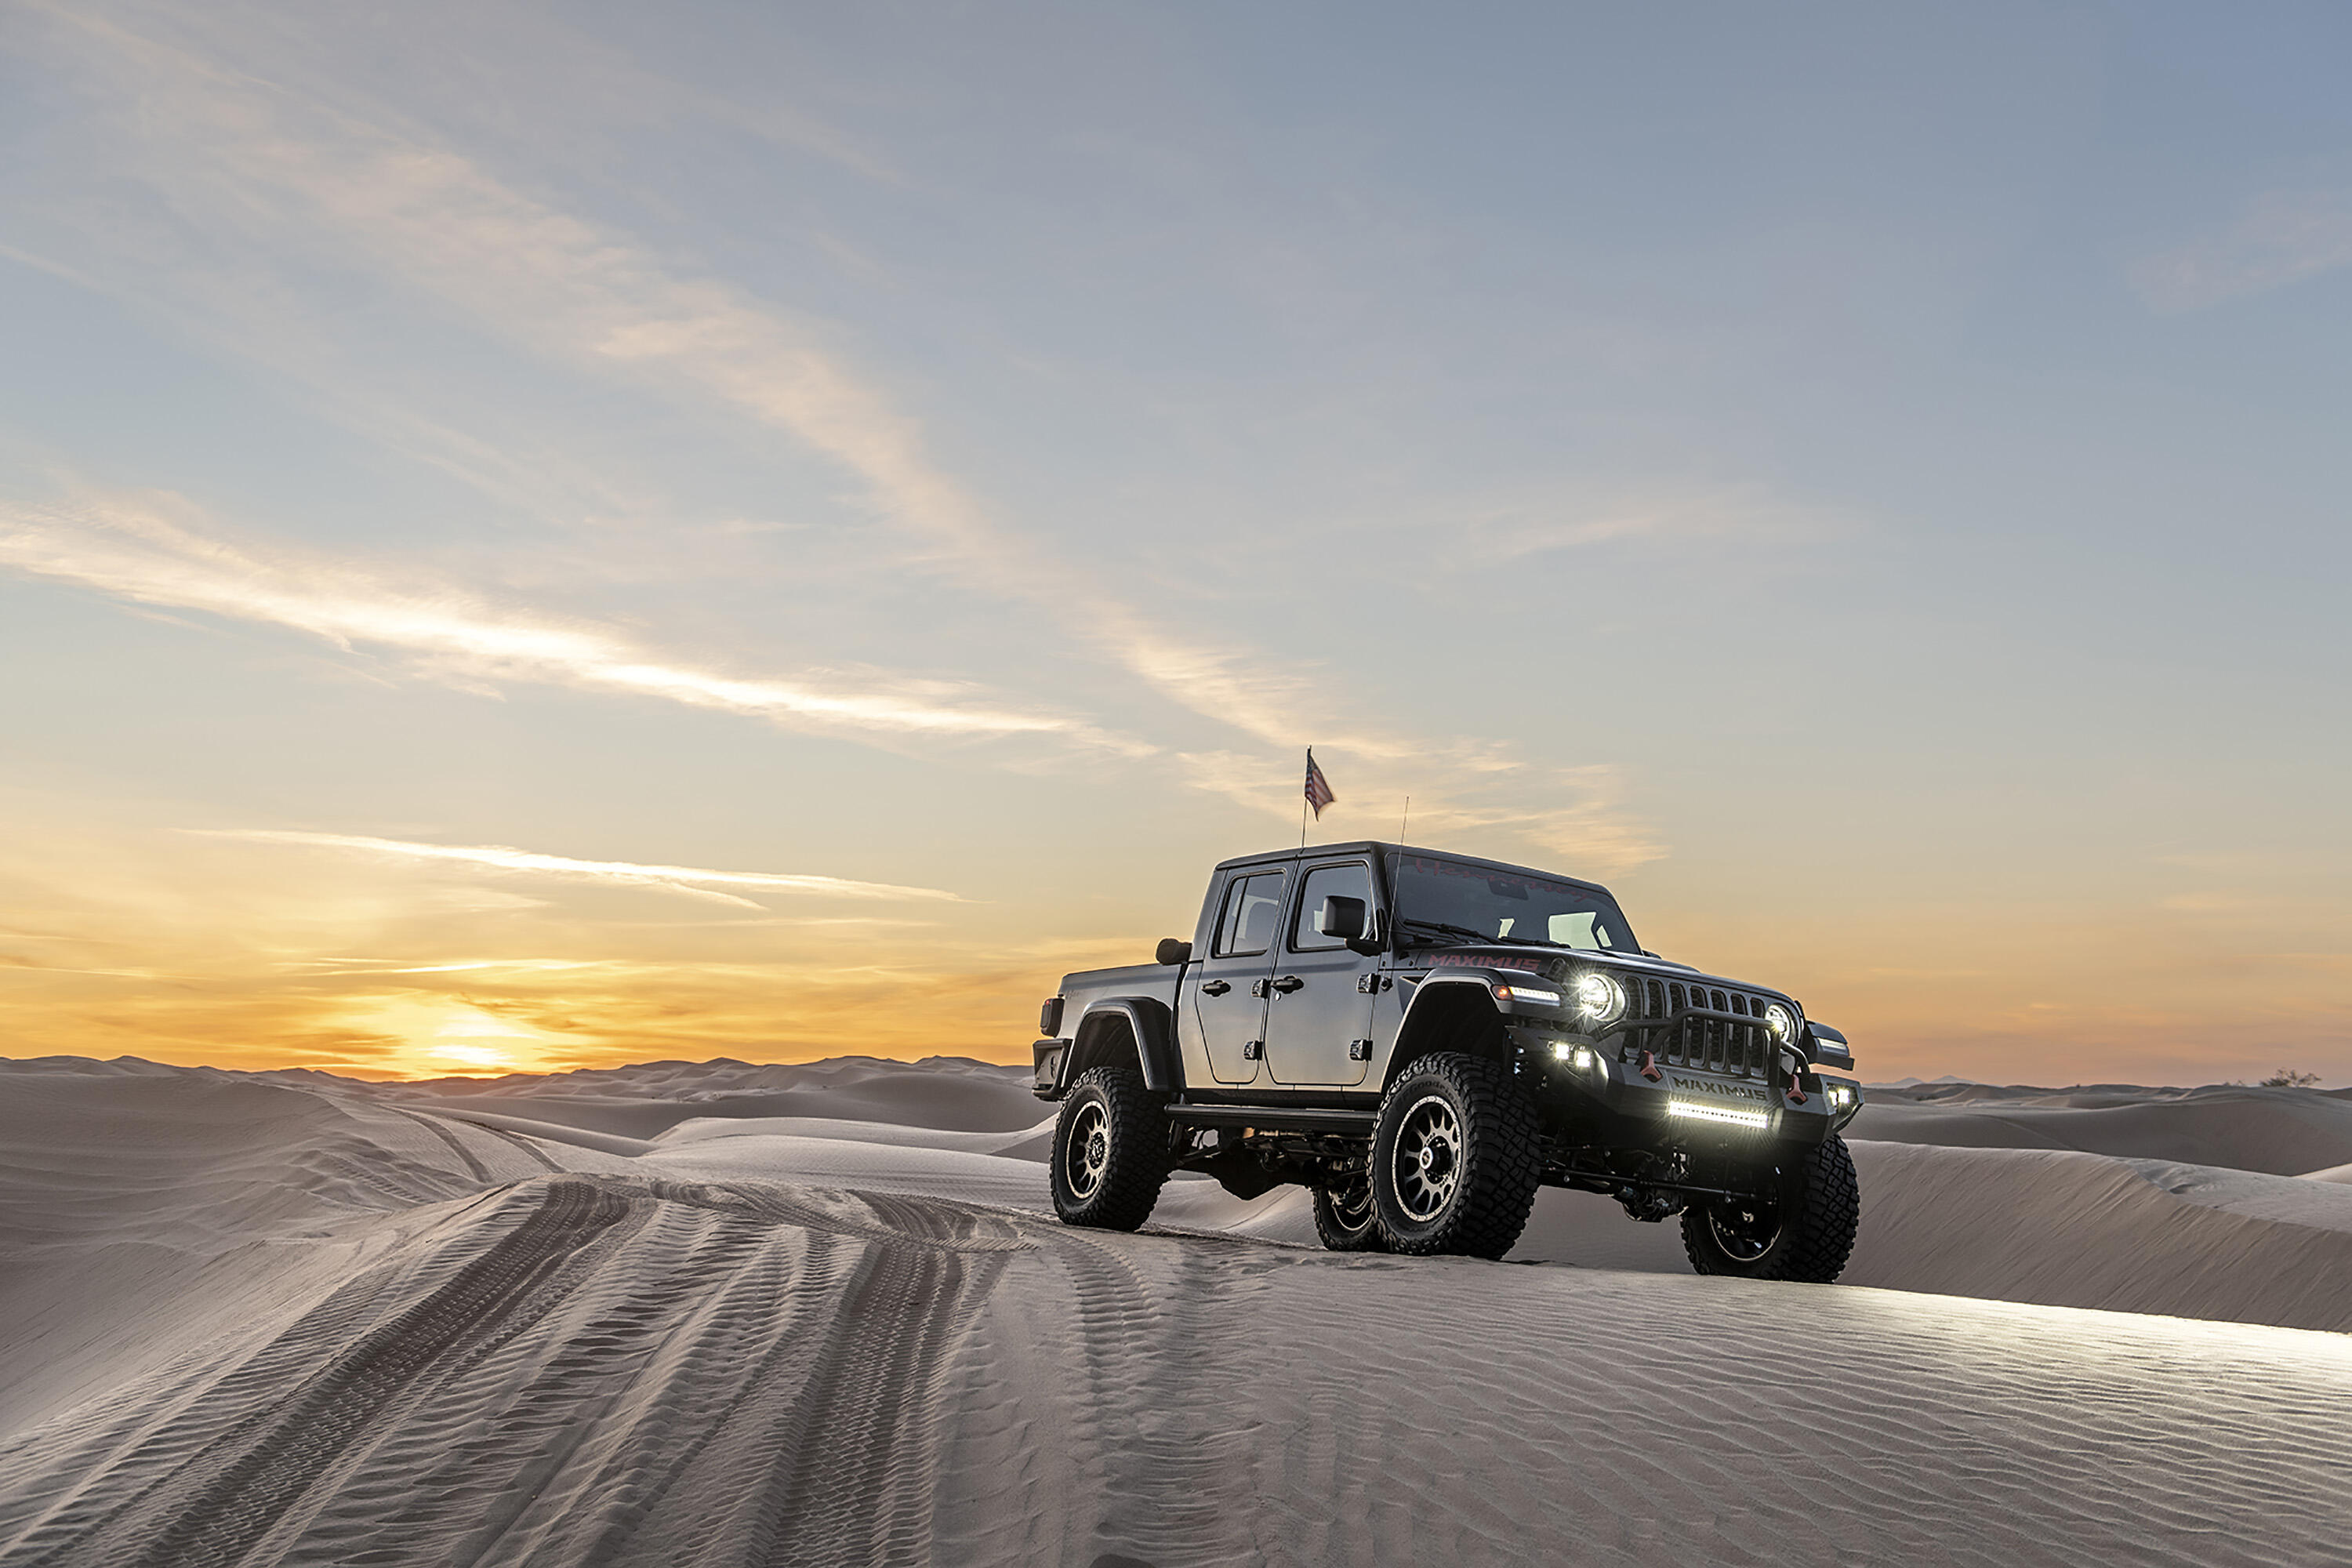 HPE Jeep Gladiator Maximus